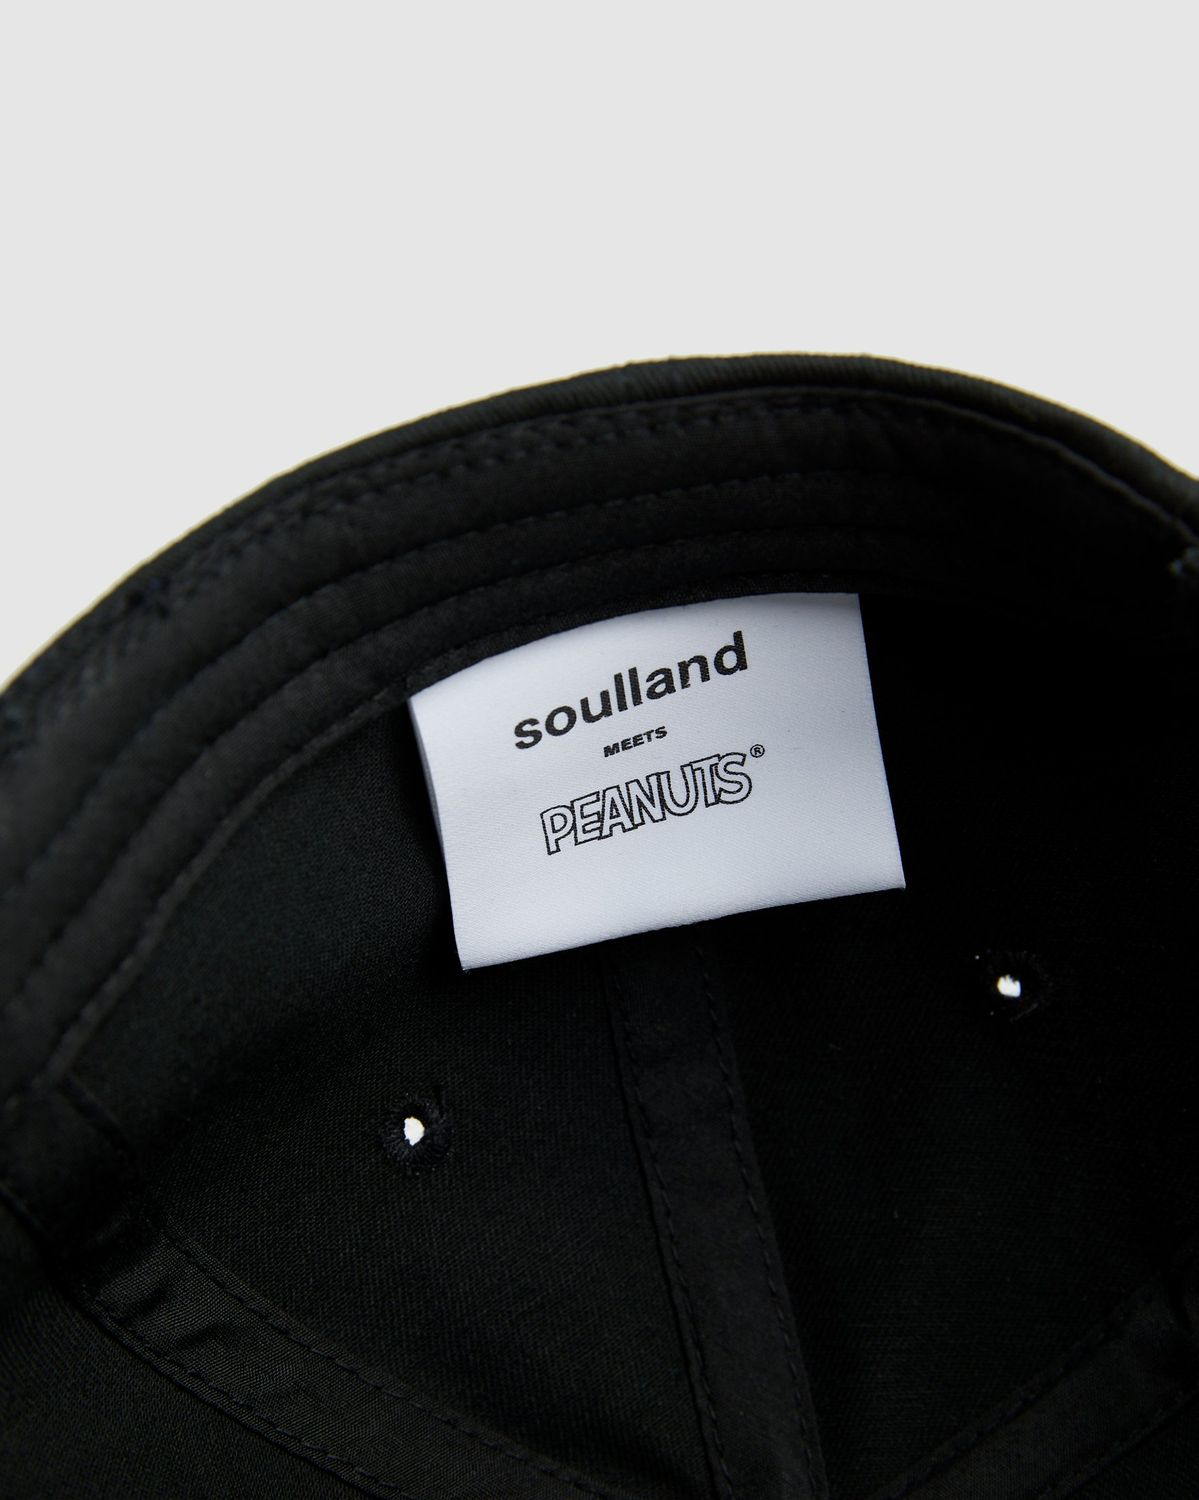 Colette Mon Amour x Soulland -  Snoopy Bed Black Baseball Cap - Image 4